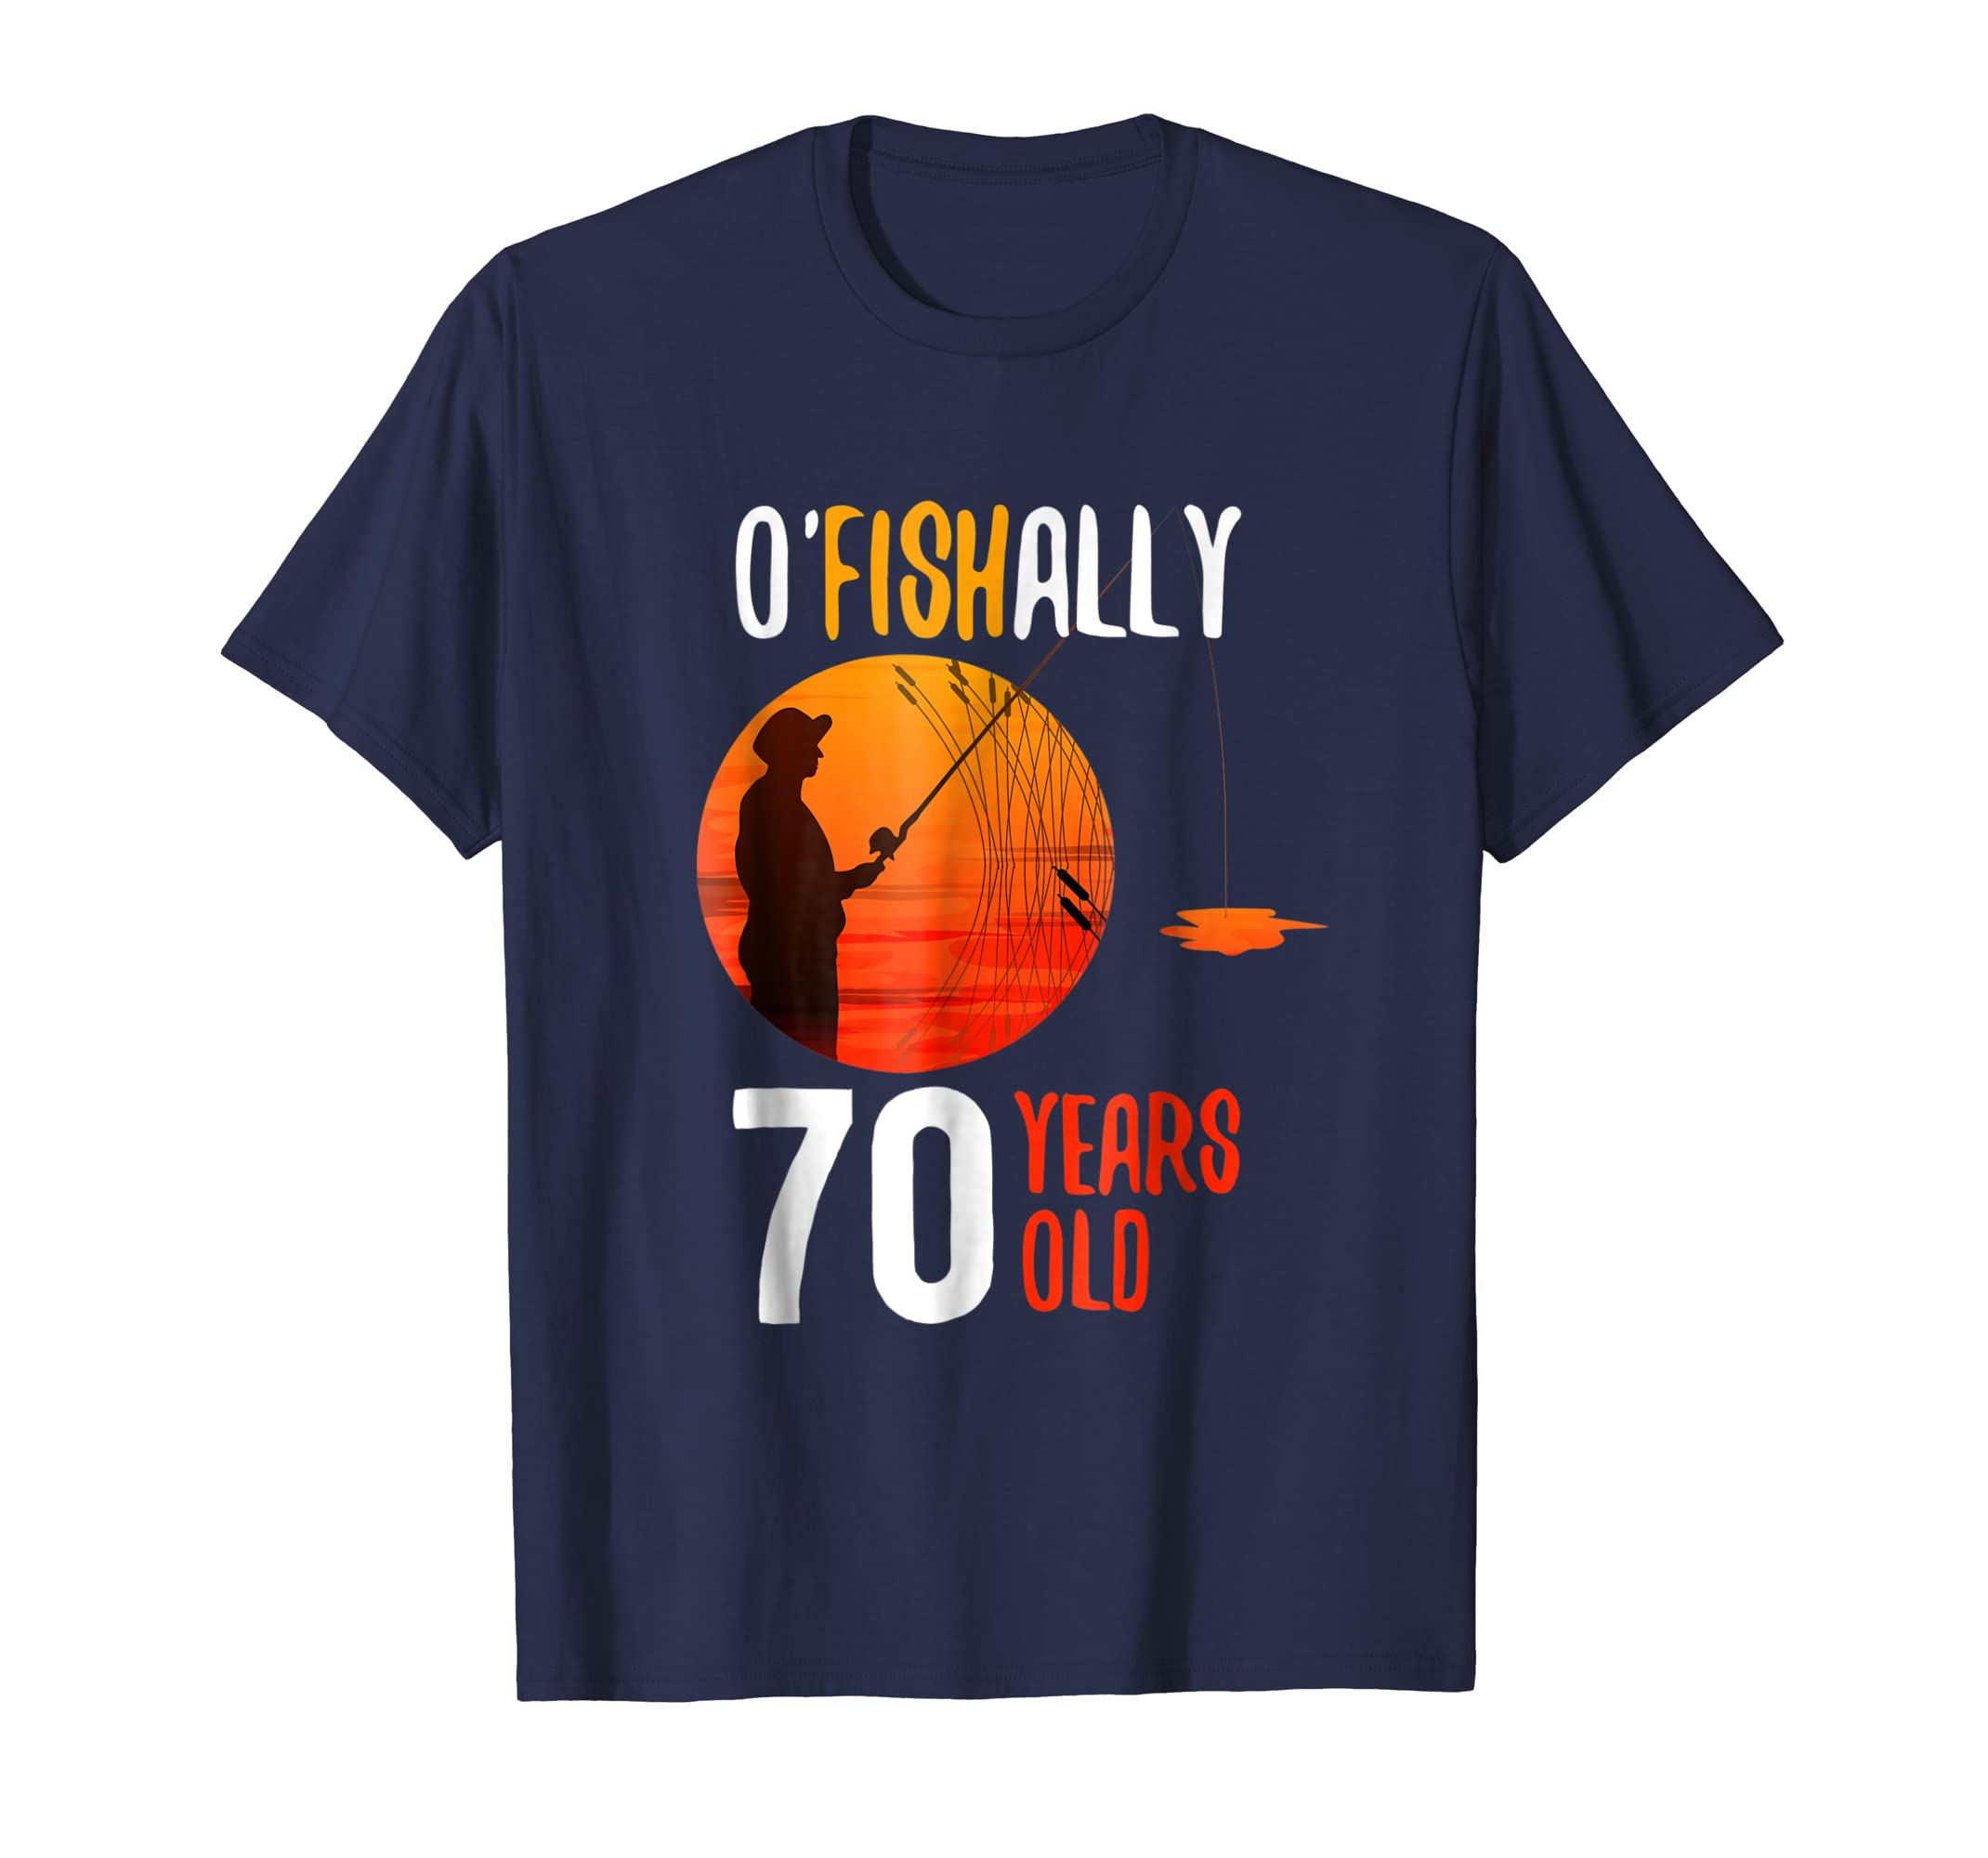 Fishally 70 Years Old 70th Birthday Tshift For Fisher-azvn